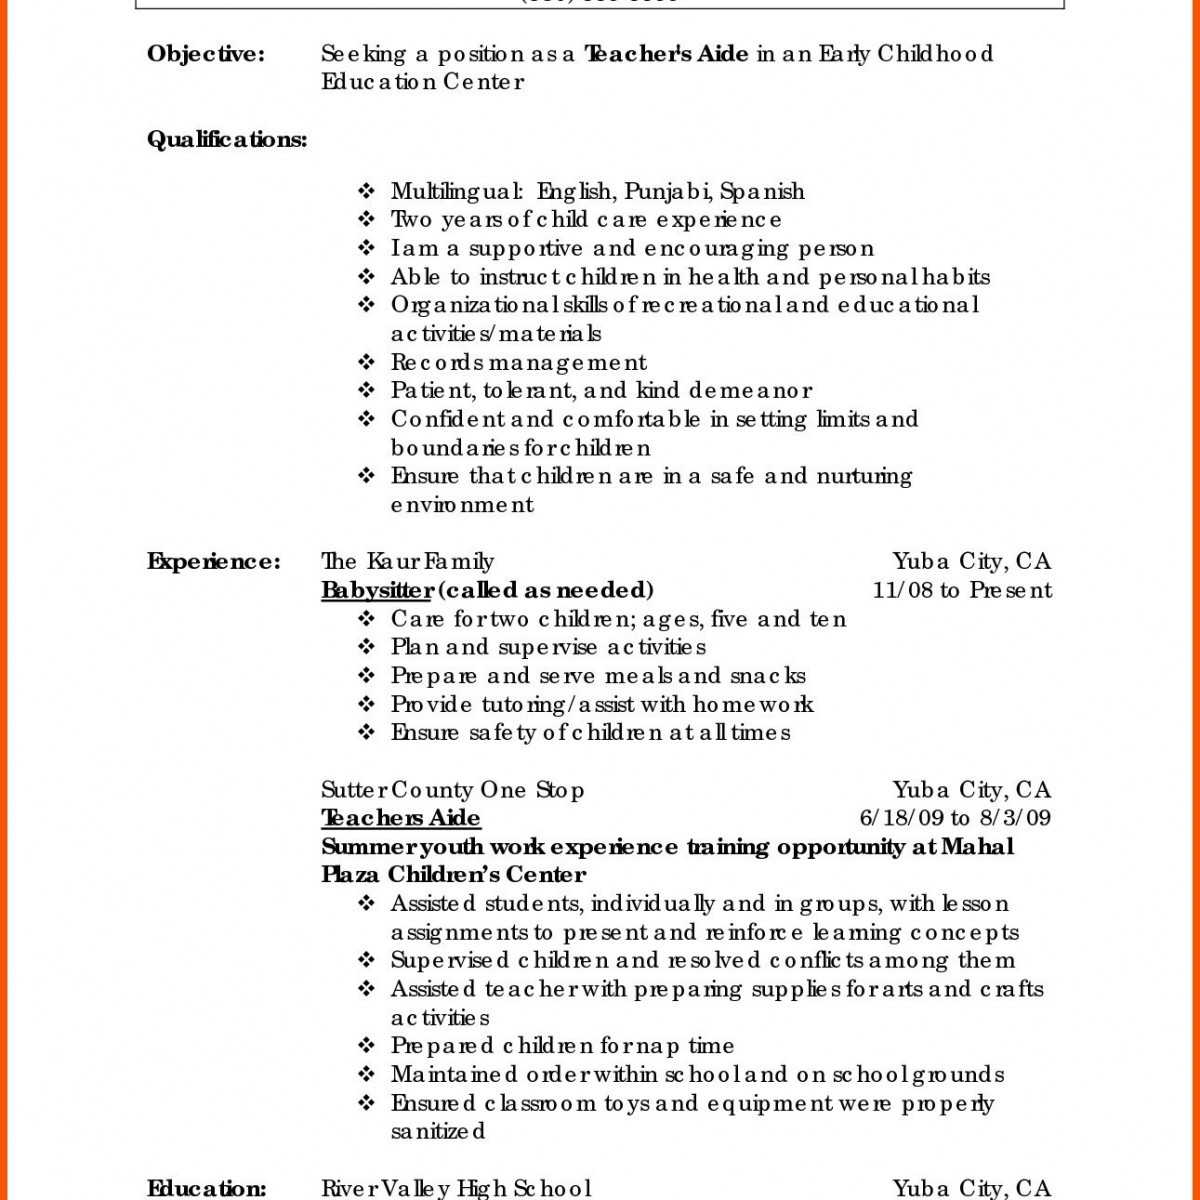 babysitter job description resume example-Babysitter Job Description Resume Best New Resume Tutor Unique Painter Resume 0d Resume with 19-i